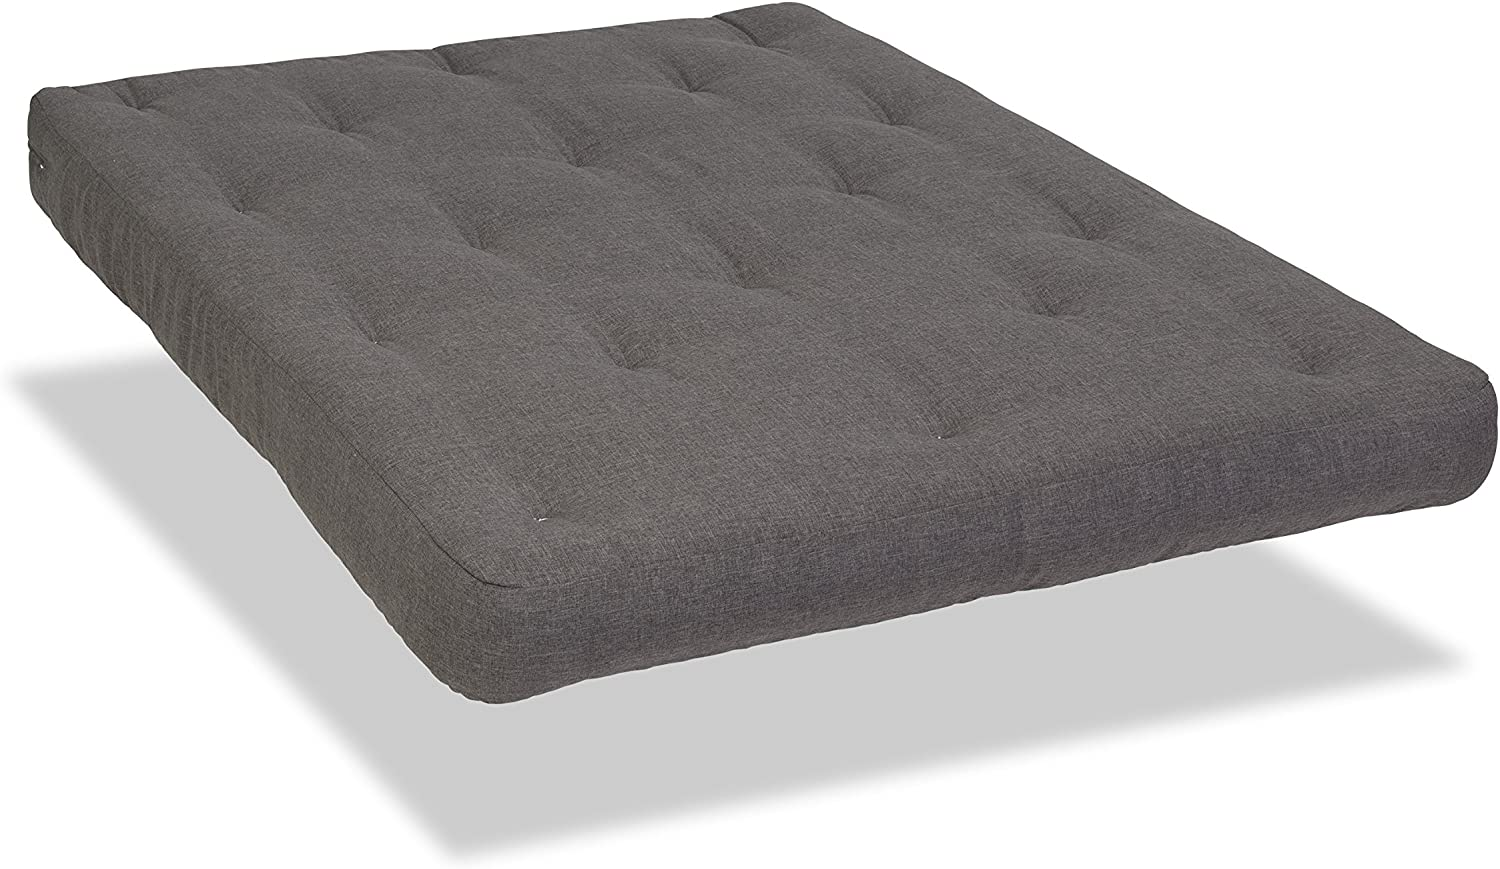 Serta Cypress Double Sided Innerspring Futon Mattress Marmor Queen Made in the USA